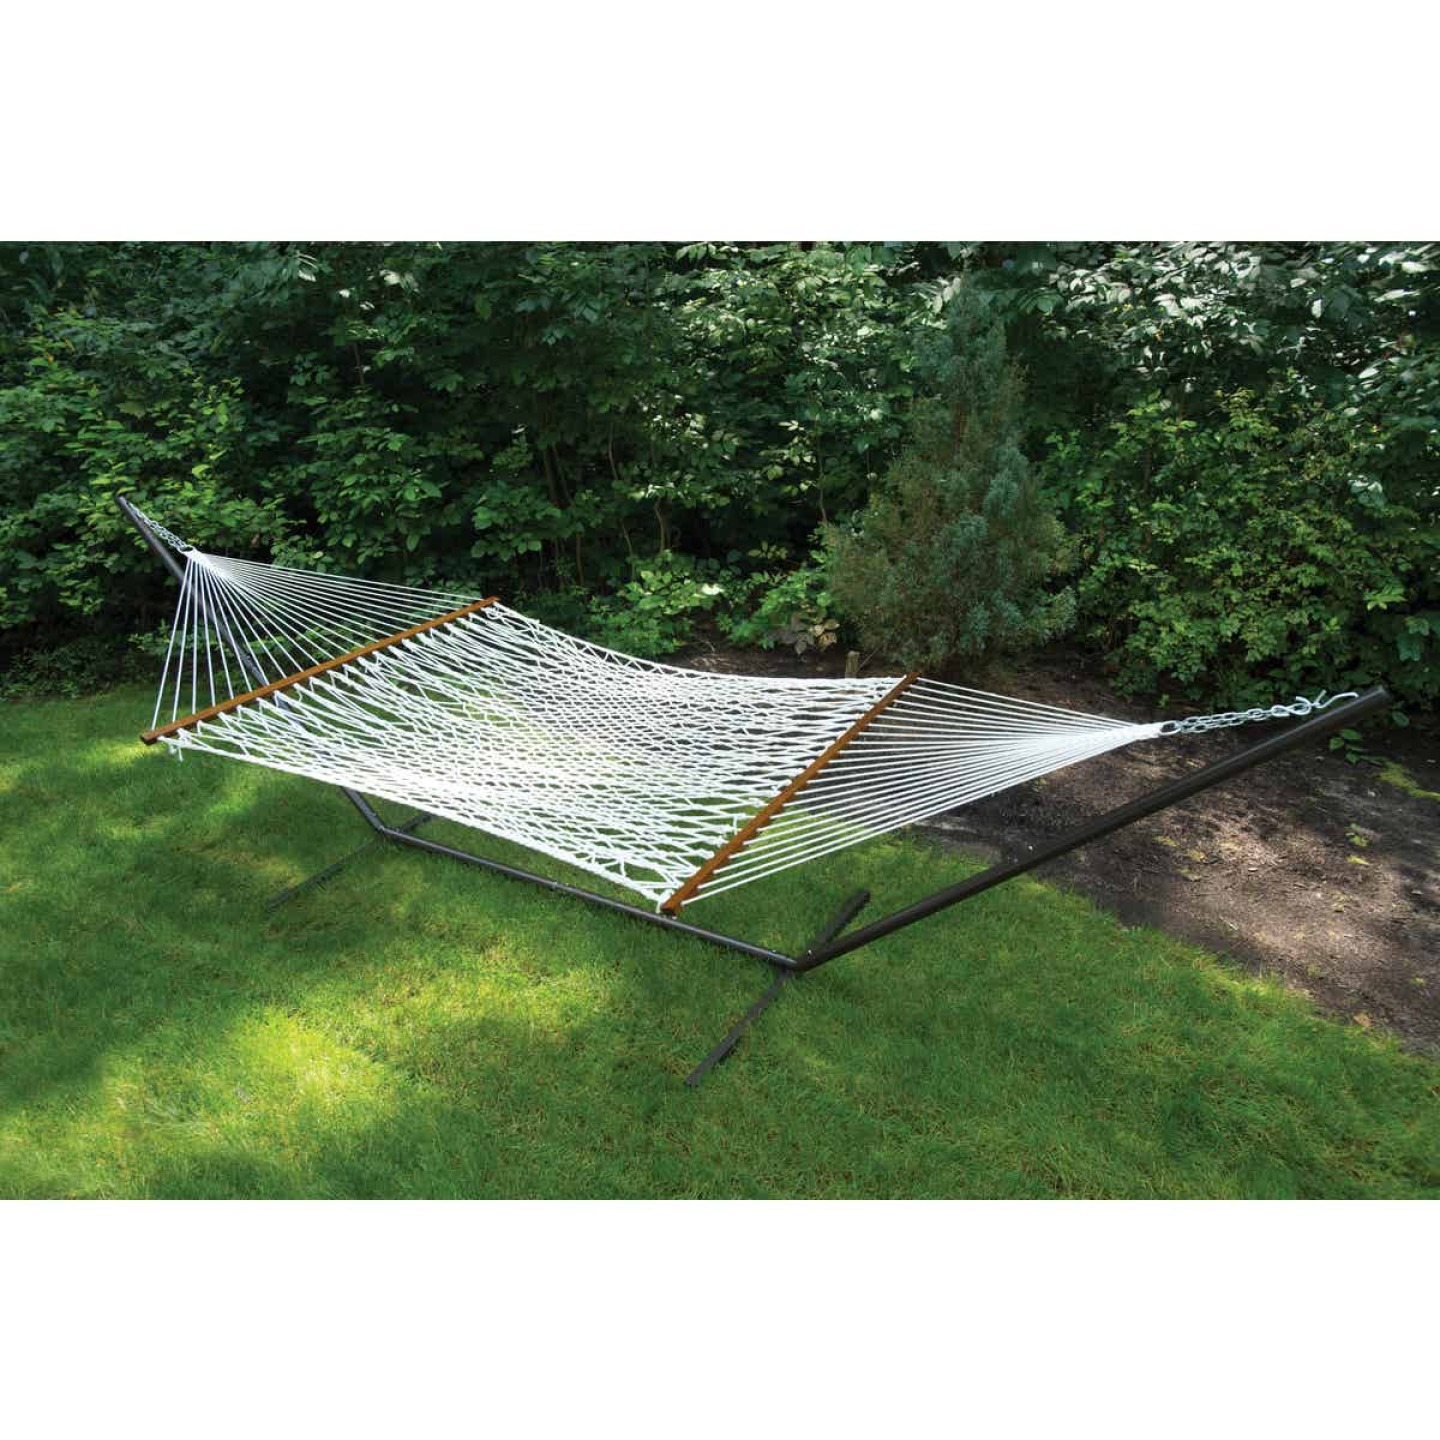 Castaway Deluxe Duracord White Poly Rope Hammock Image 2